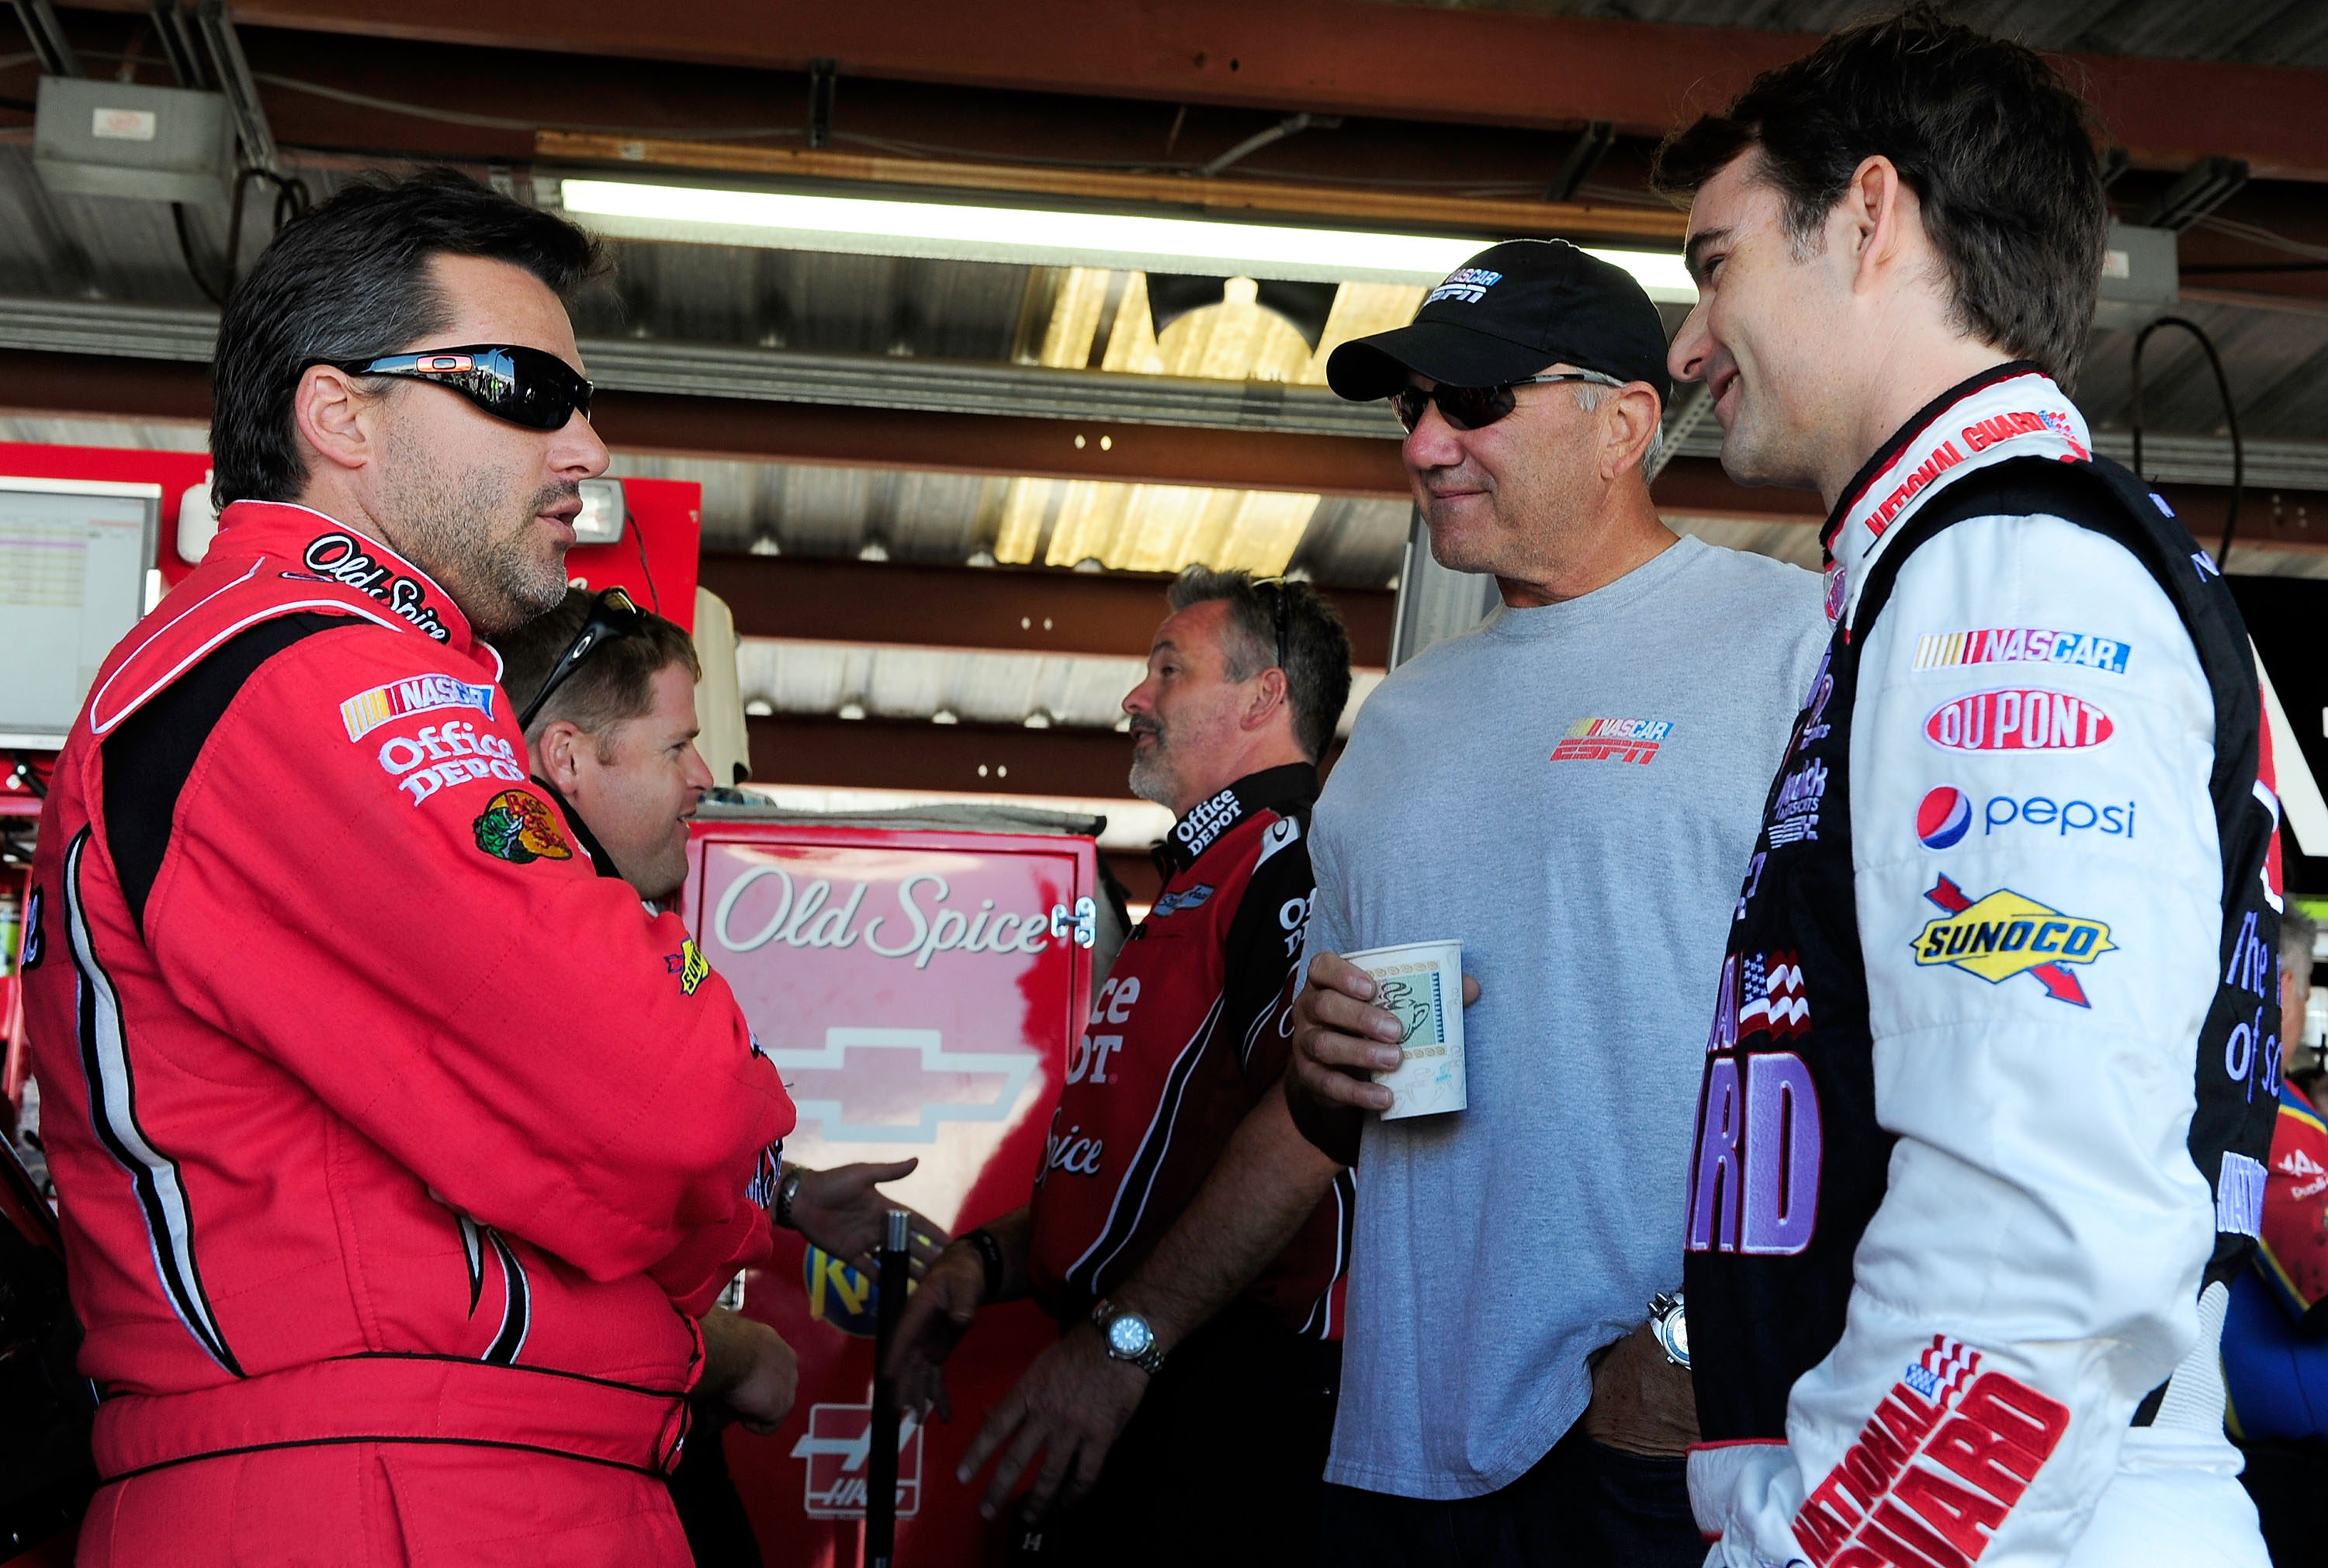 Tony Stewart and Jeff Gordon are both in Hendrick equipment but in 2011 look for them to work more closely in 2011.